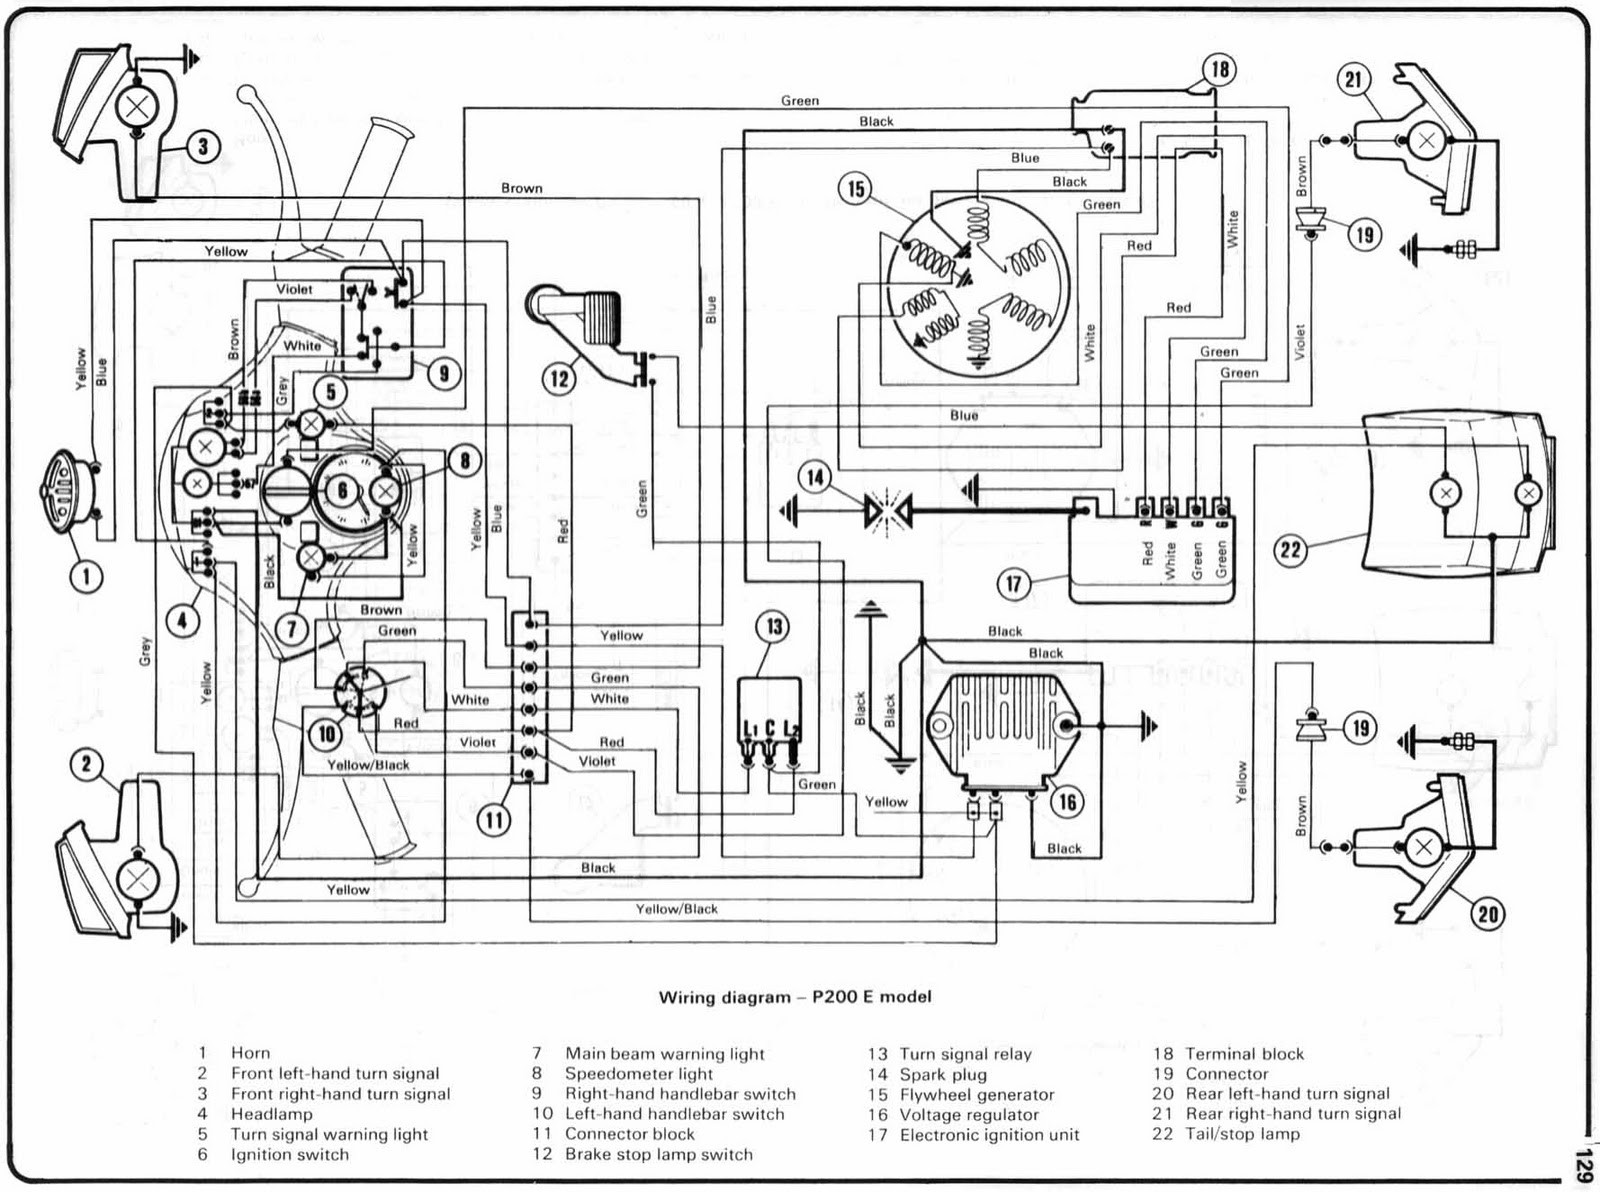 wiring diagrams 911  vespa p200 e model wiring diagram